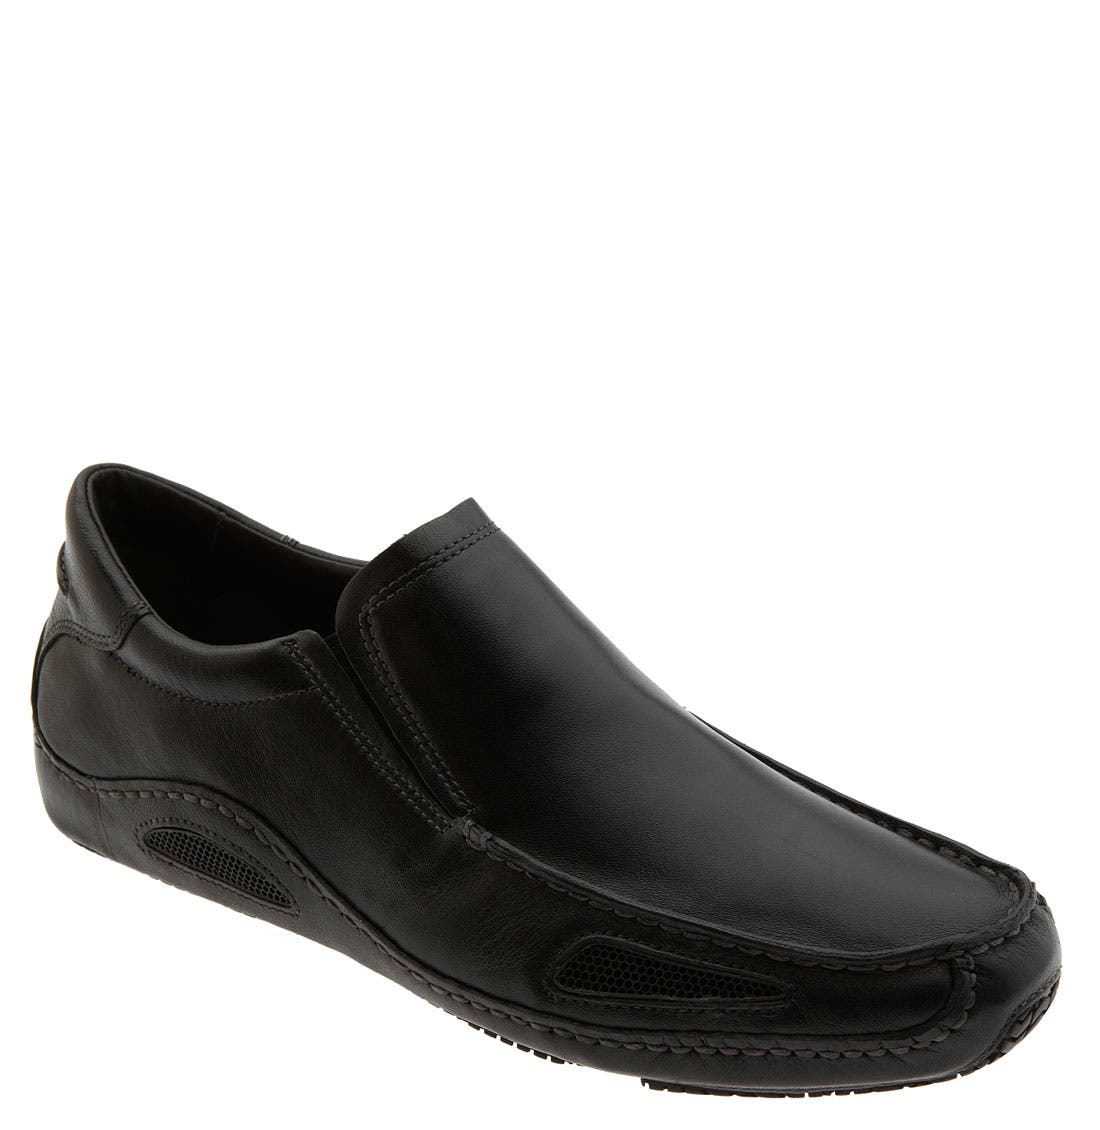 Main Image - Cole Haan 'Air Ryder' Slip-On